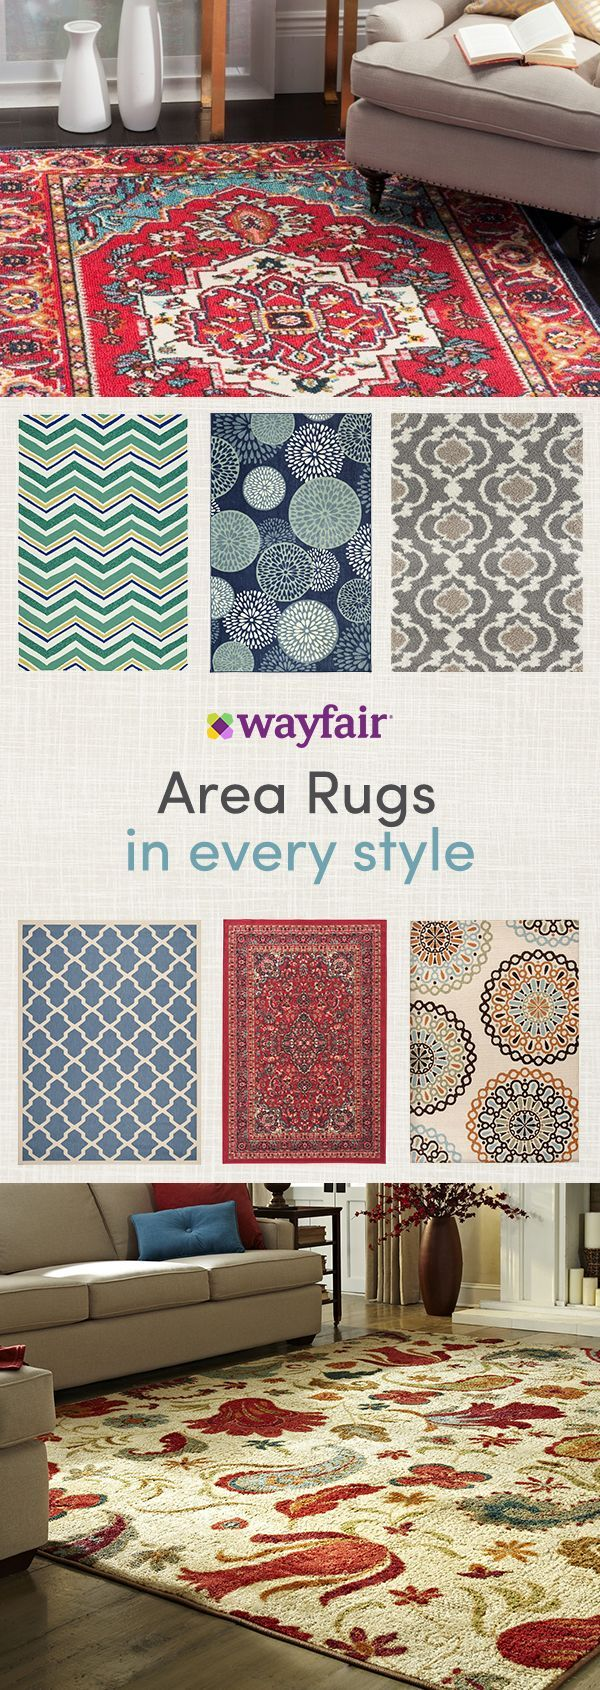 Area rugs can help define your space and solidify your overall theme. Create a focal point in a room with a bold and printed style, or find the perfect complement to your existing style with simply chic options. Get access to exclusive deals at up to 70% OFF and enjoy FREE SHIPPING on all orders over $49 at Wayfair! Sign up and shop now!